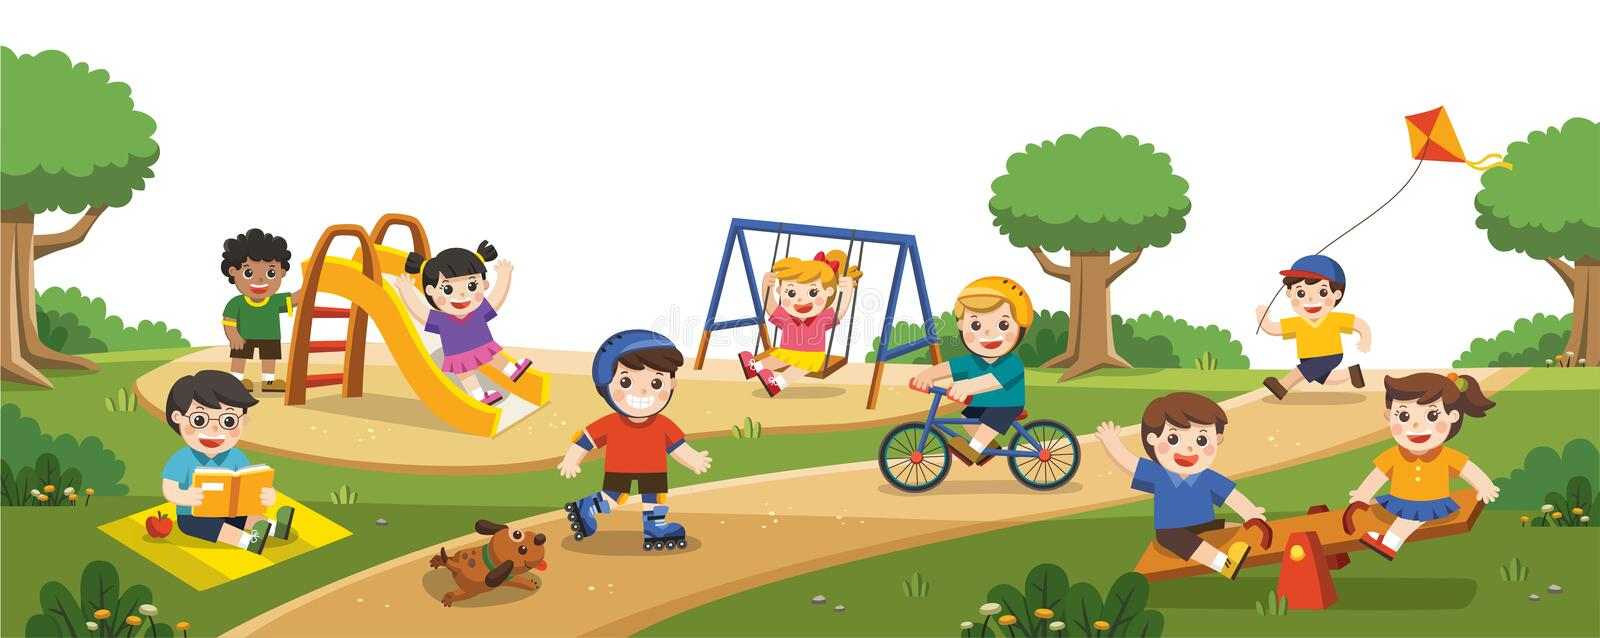 Happy excited kids having fun together on playground. Children play outside. stock illustration